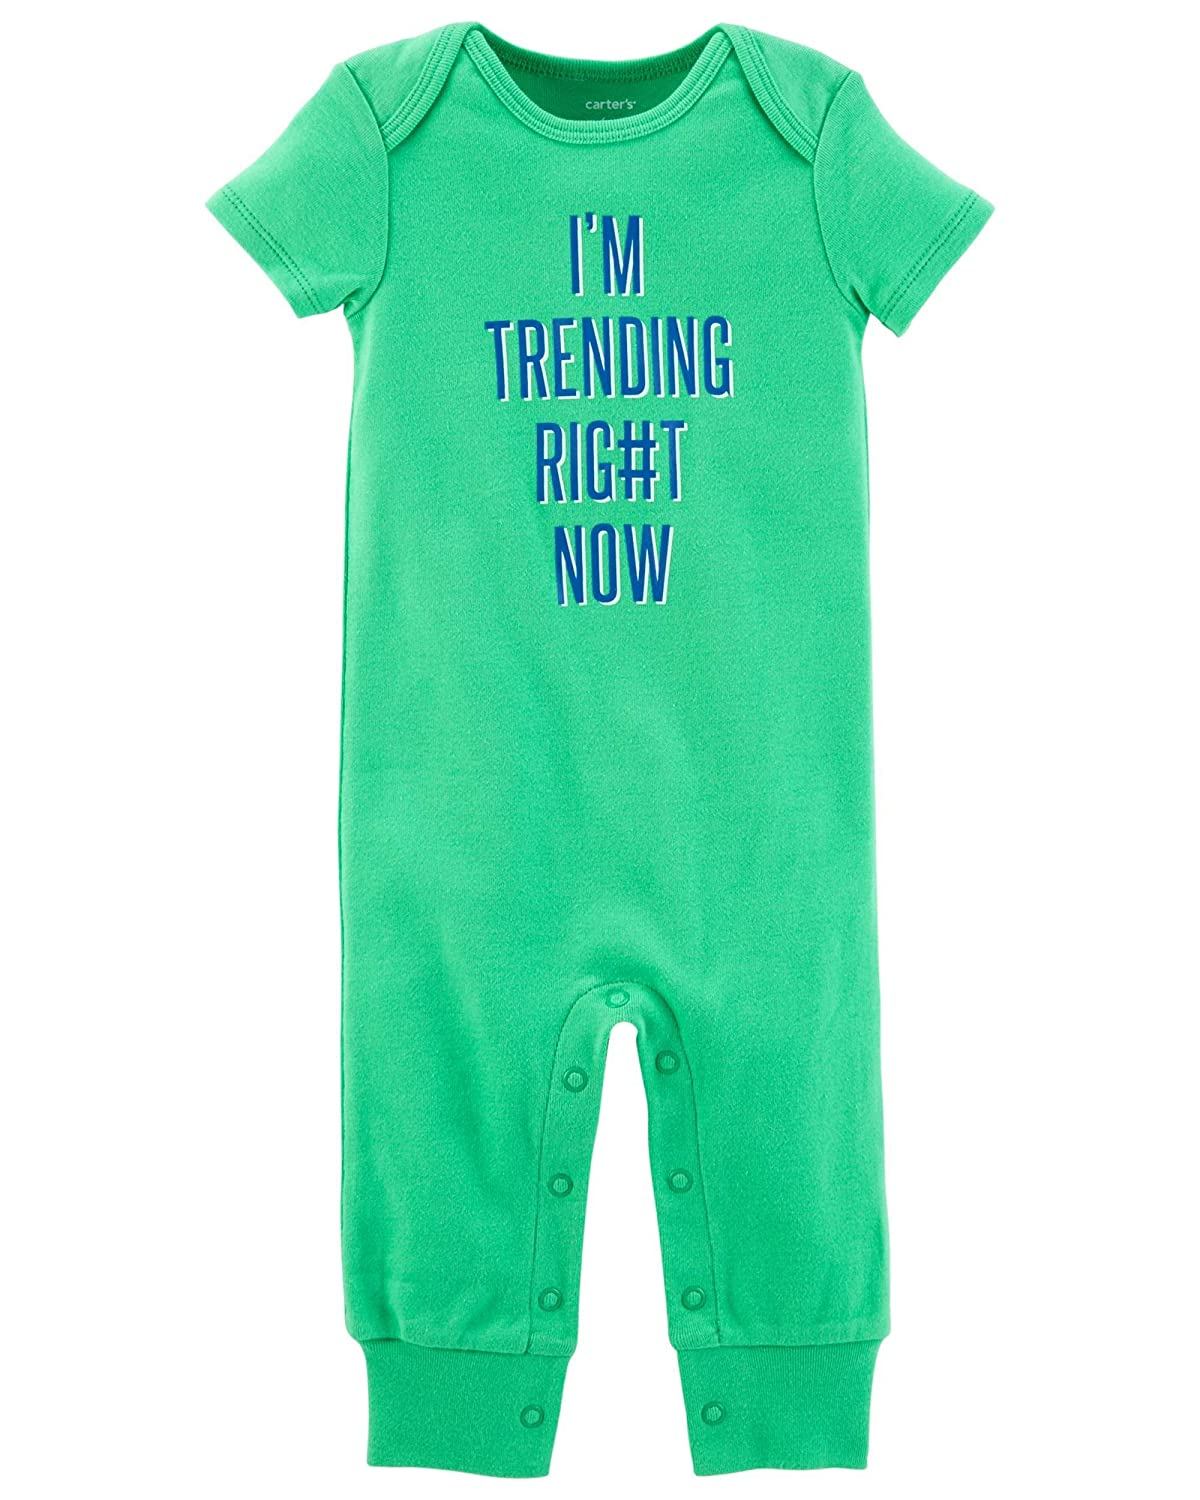 Carters Baby Boys Im Trending Right Now Jumpsuit 12 Months Green